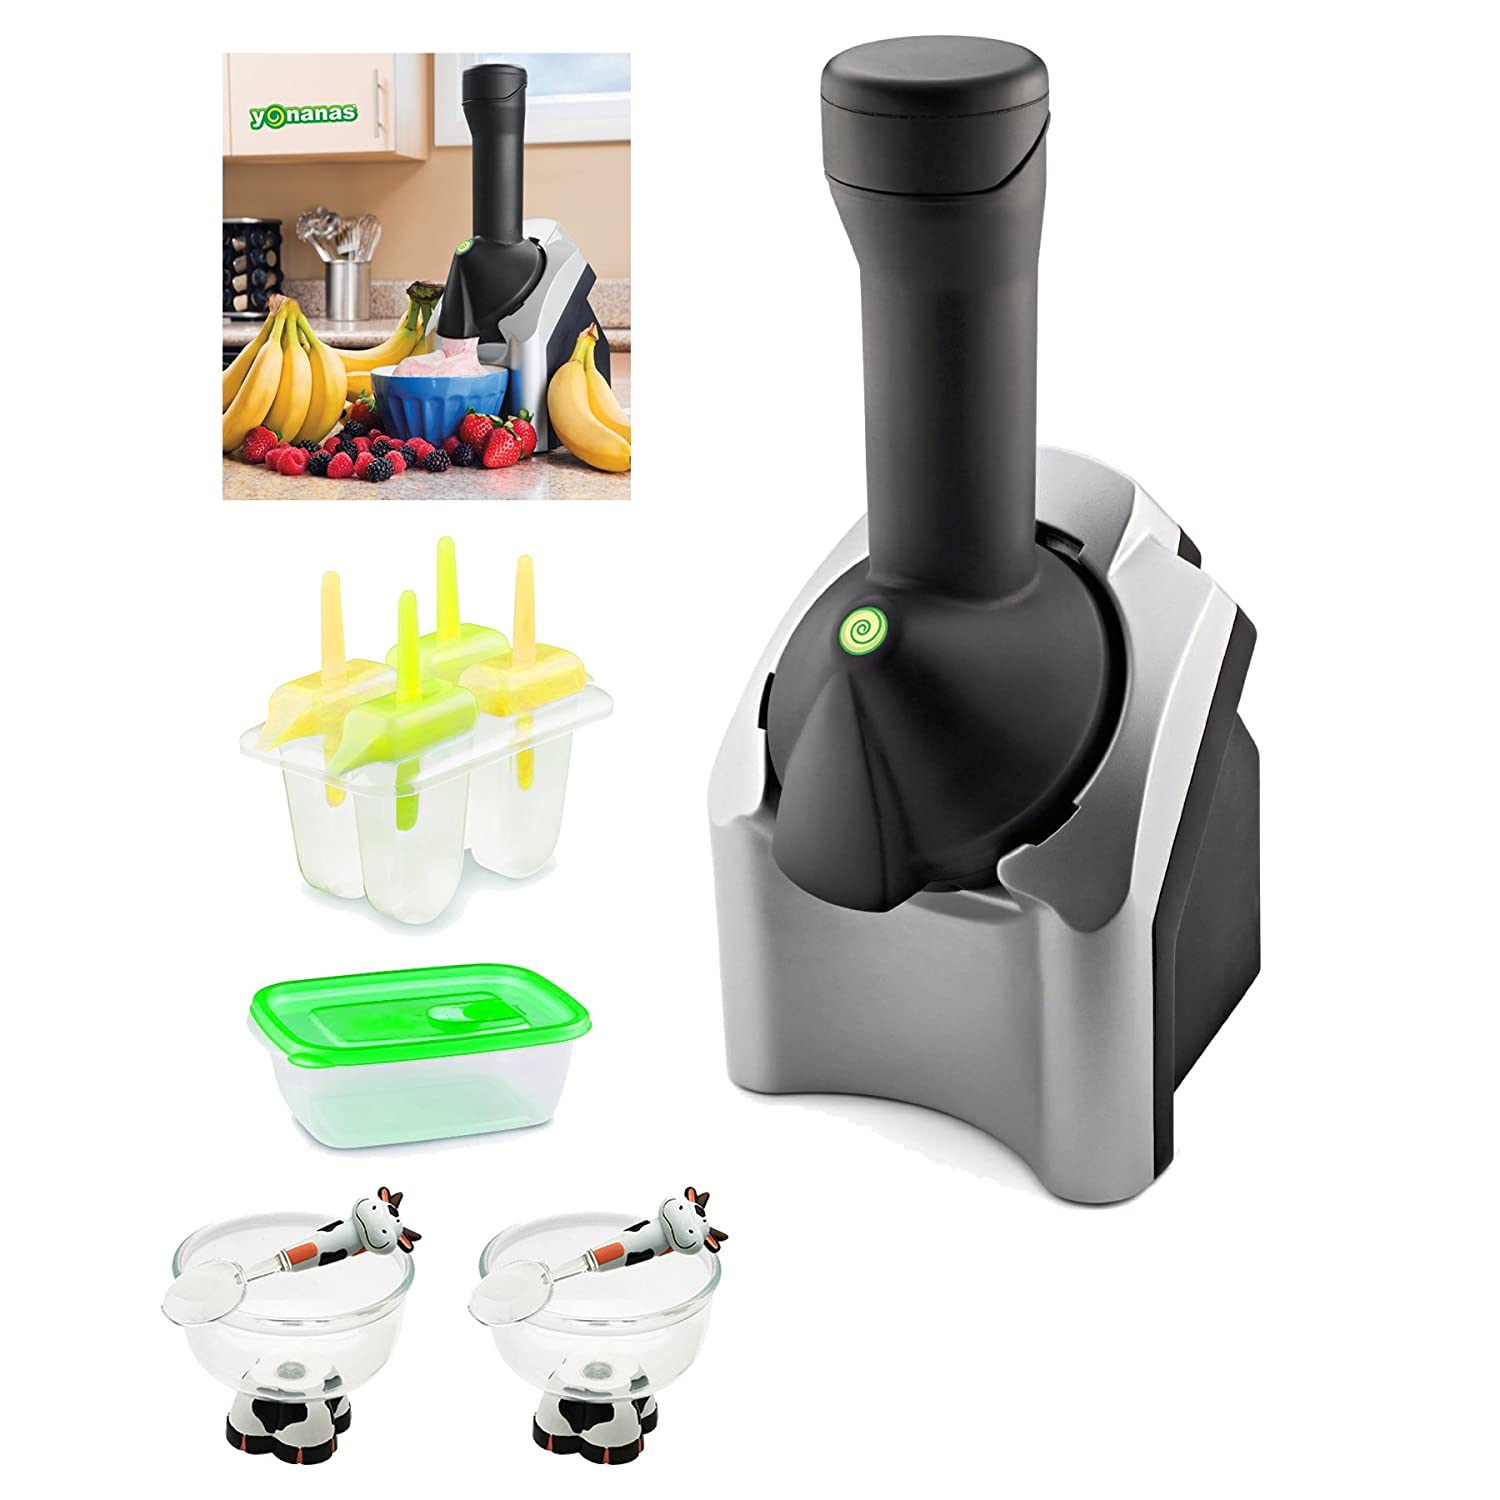 Yonanas 901 Deluxe Frozen Treat Maker with Cute Brutes Ice Cream Bowl and Spoon 2-Pack